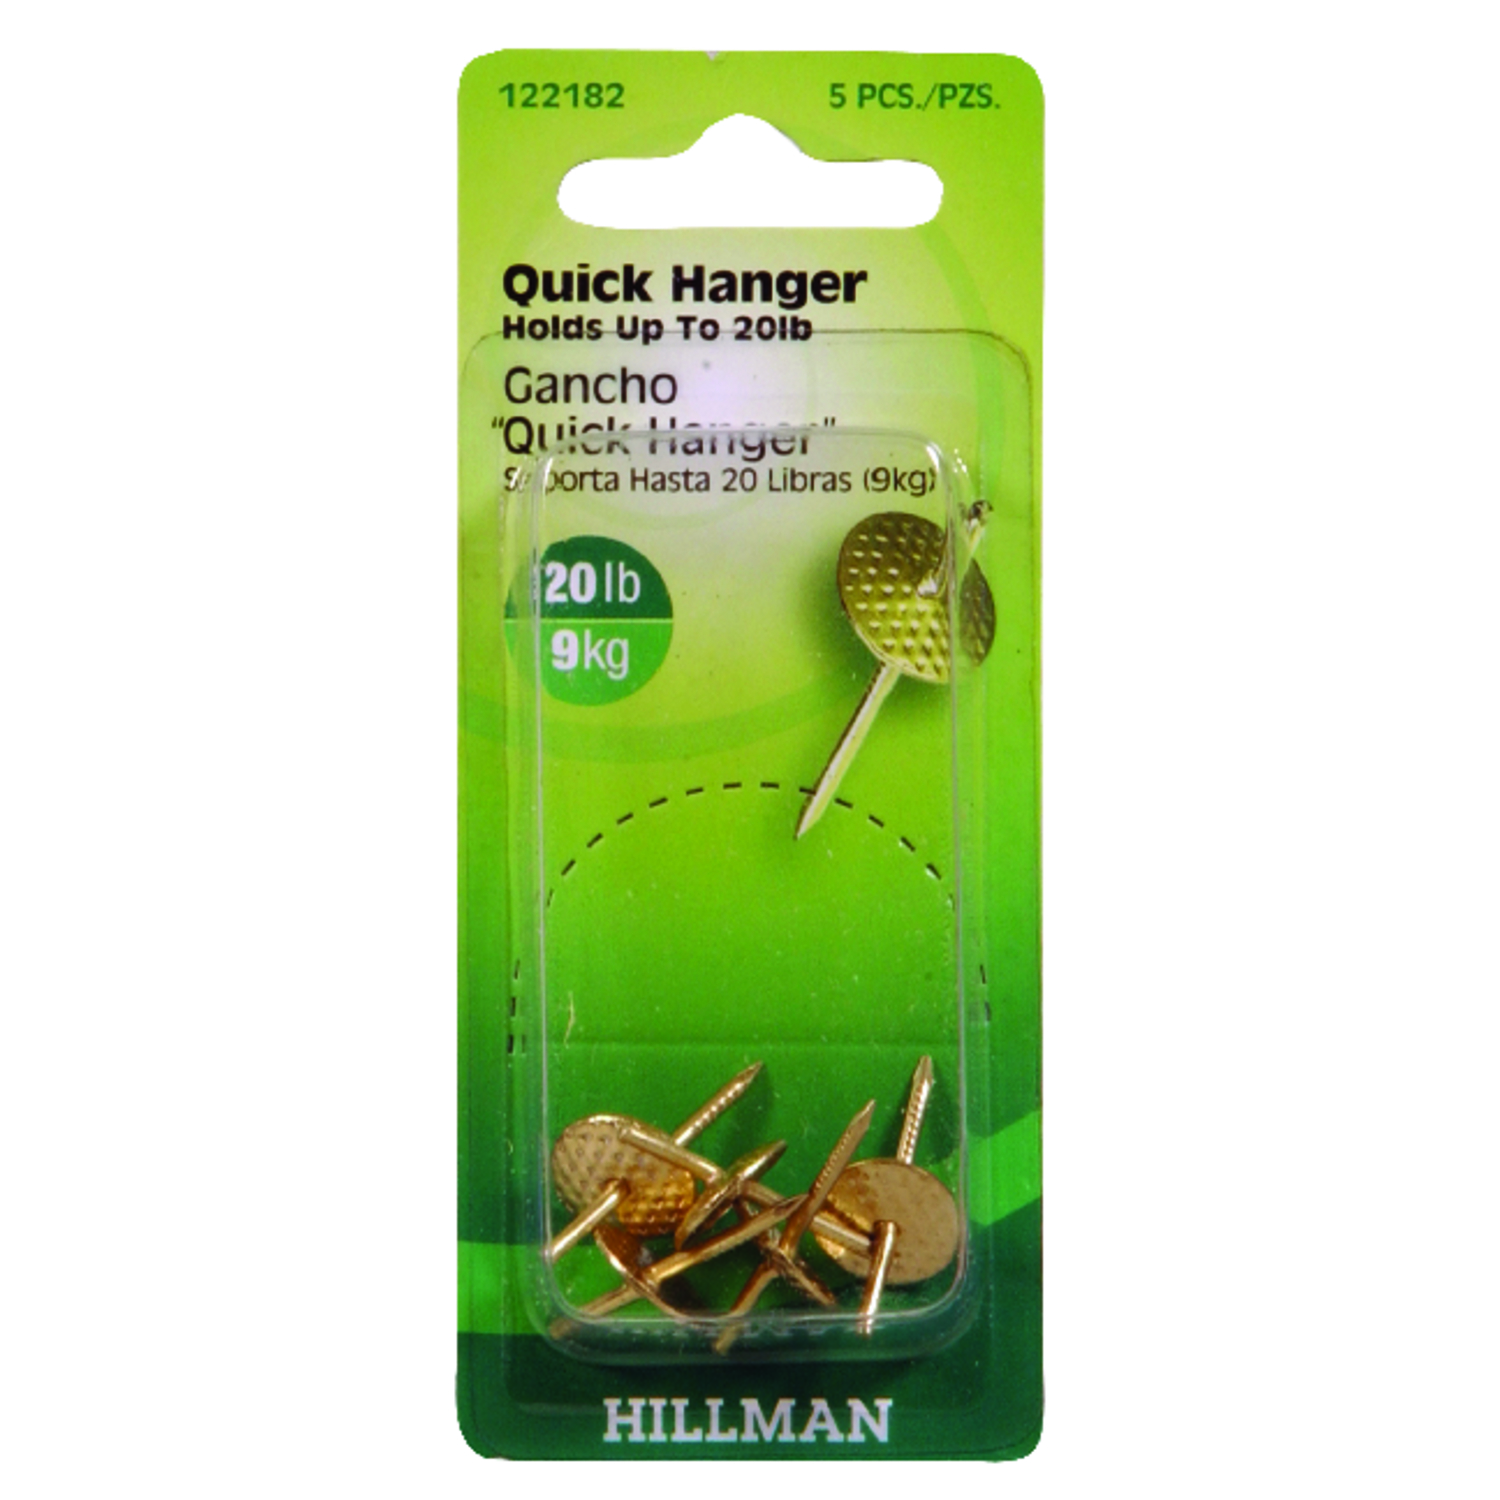 HILLMAN  AnchorWire  Brass-Plated  Brass  Quick Hanger  20 lb. 5 pk One Piece